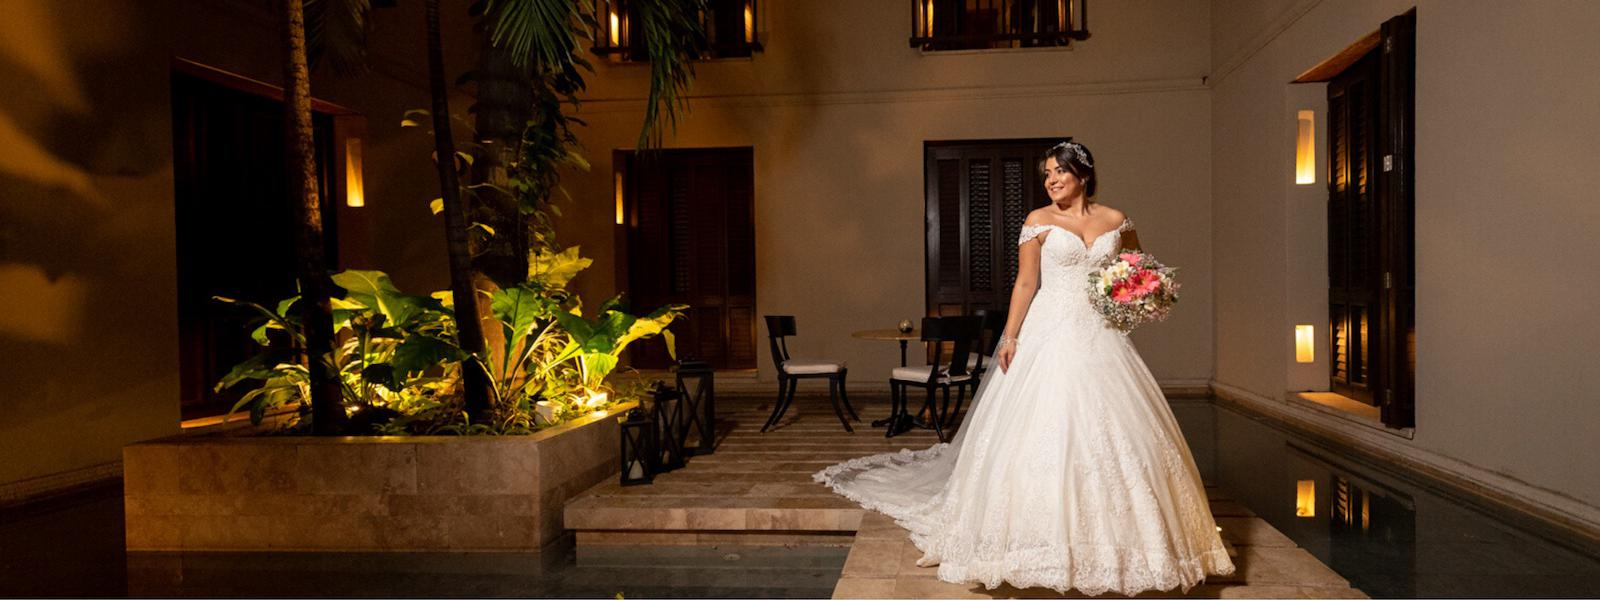 Cartagena de Indias, your wedding destination! - Bastion Luxury Hotel - Cartagena